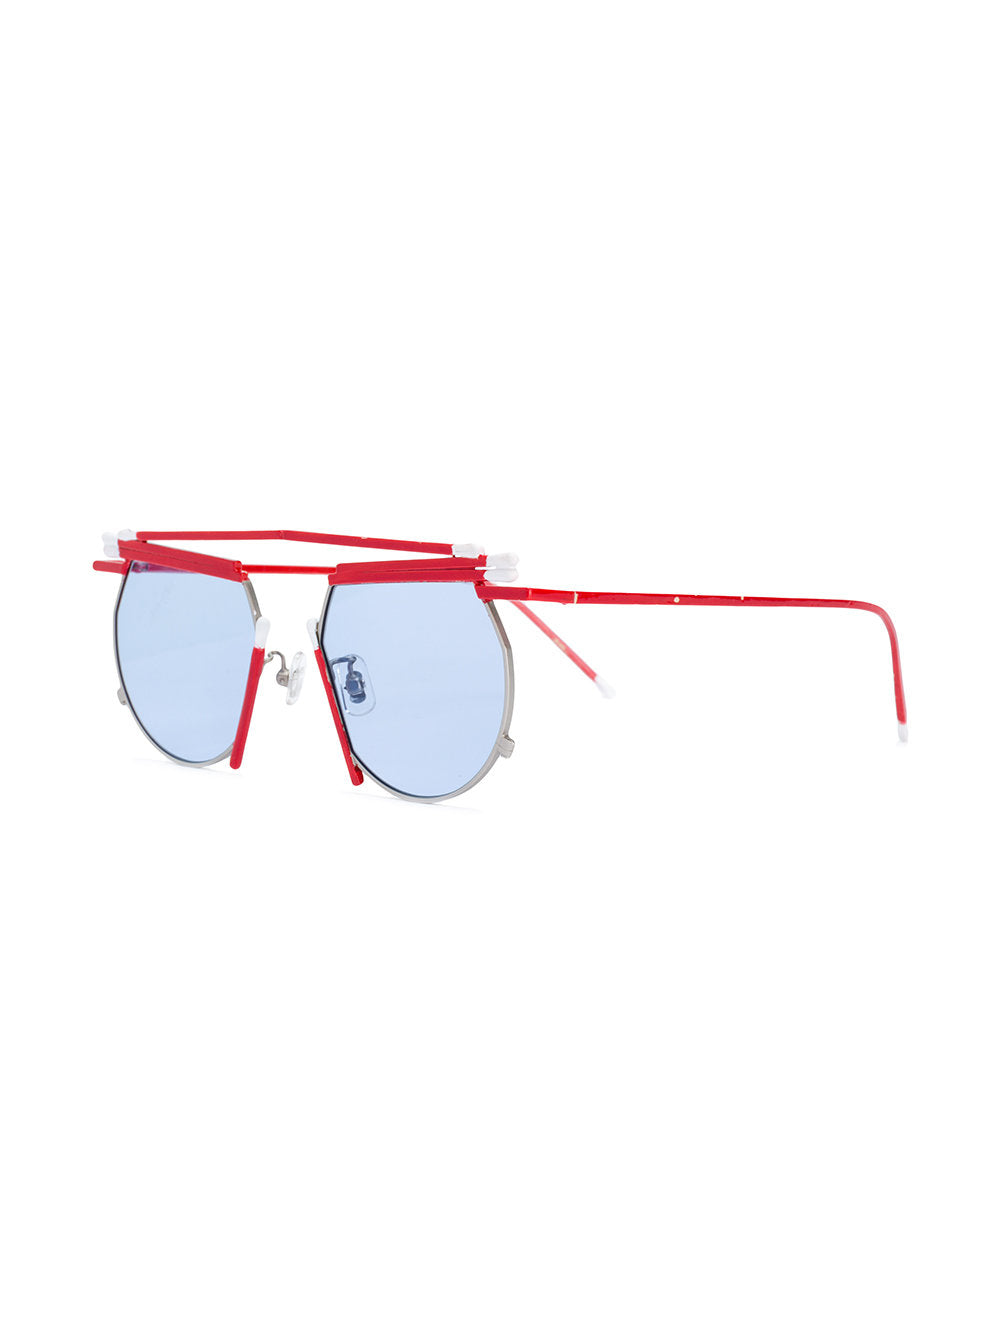 Henrik Vibskov x Gentle Monster red white match sunglasses - 2